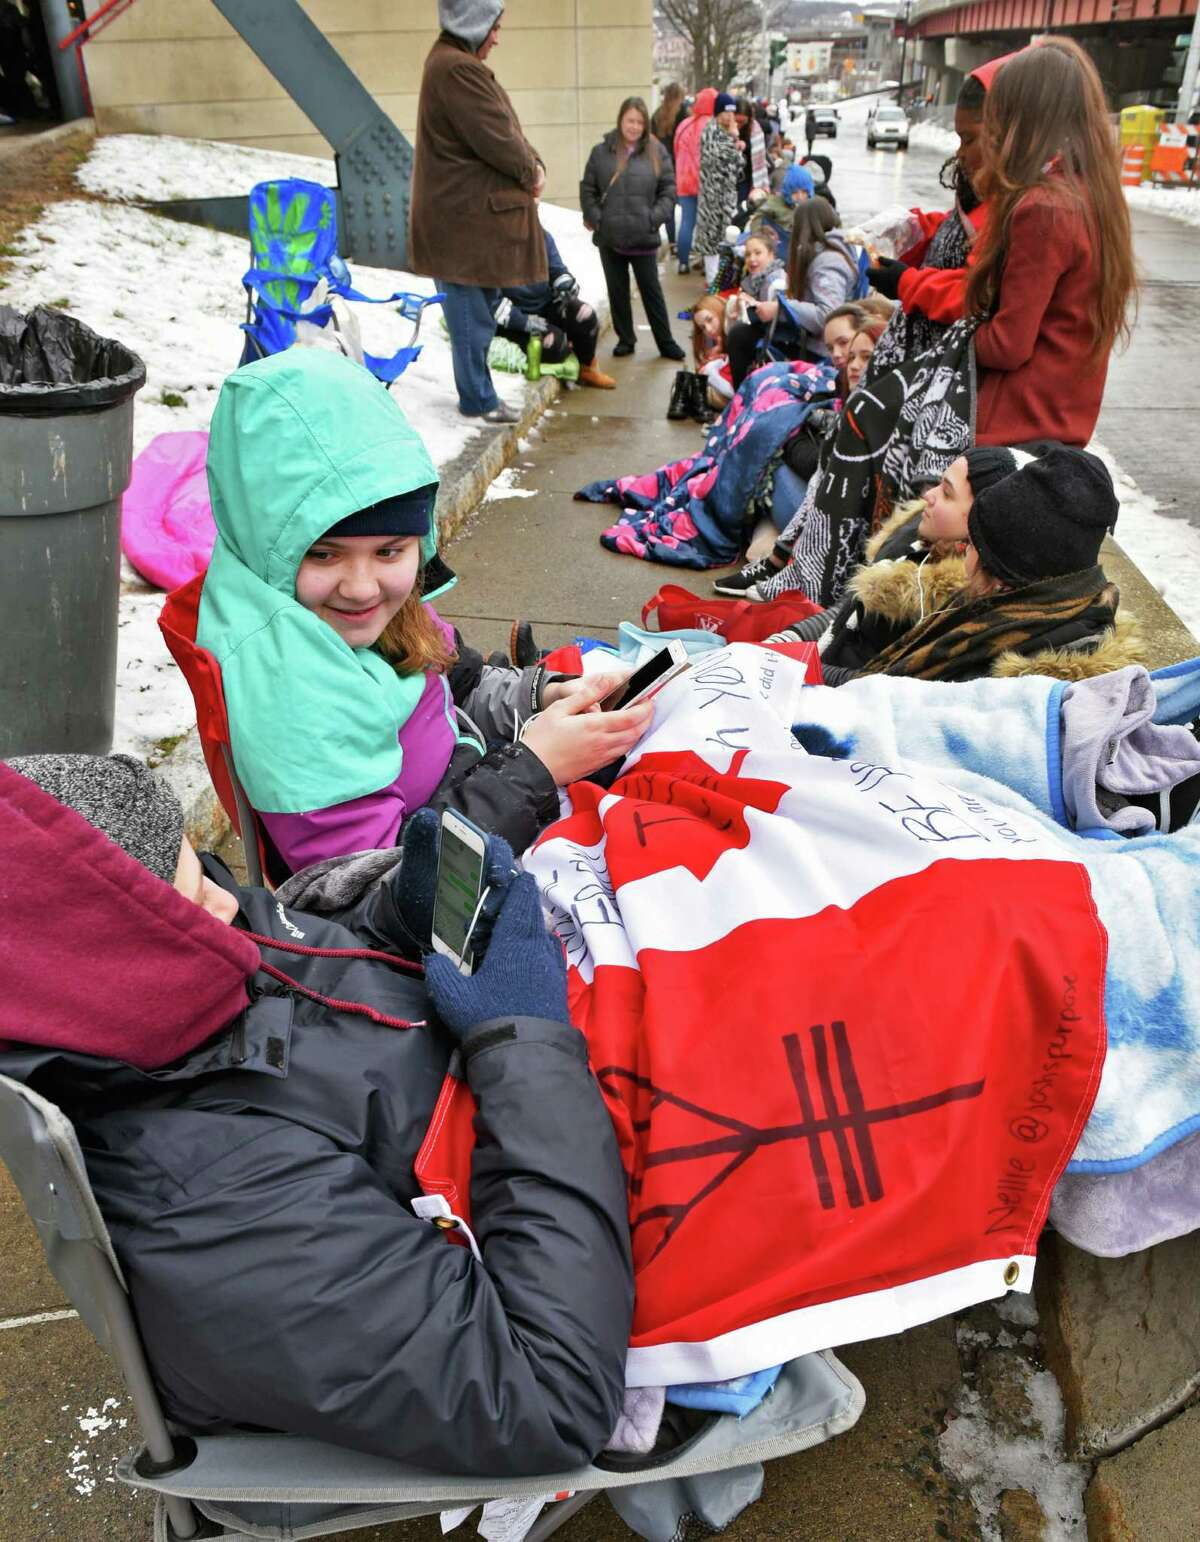 In line since 4AM, Stephanie Hamel, 17, left, and Nellie Mormul-Dubois, 16, of MontrŽal join fans queueing up for tonight's Twenty One Pilots concert at the Times Union Center Wednesday Jan. 25, 2017 in Albany, NY. (John Carl D'Annibale / Times Union)